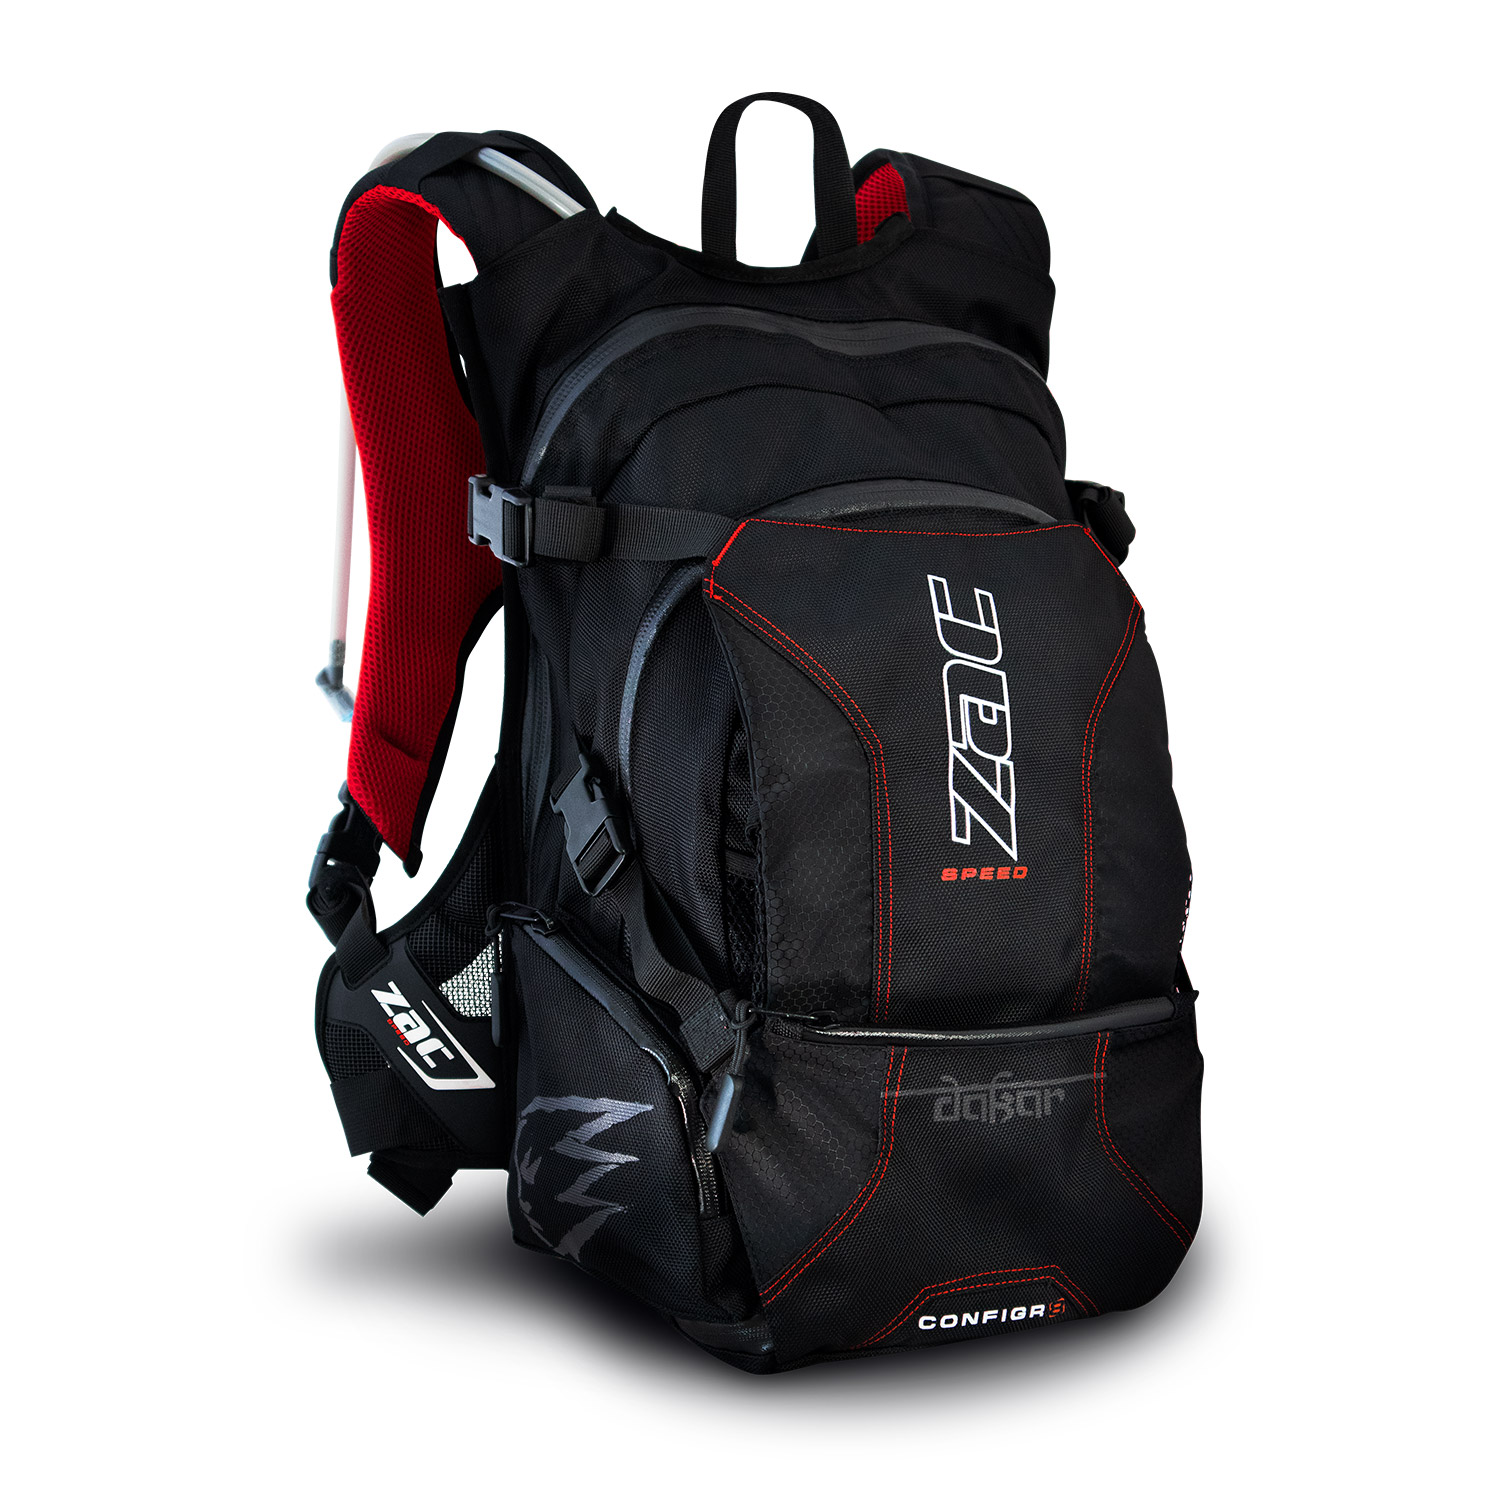 DAKAR Adventure Backpack